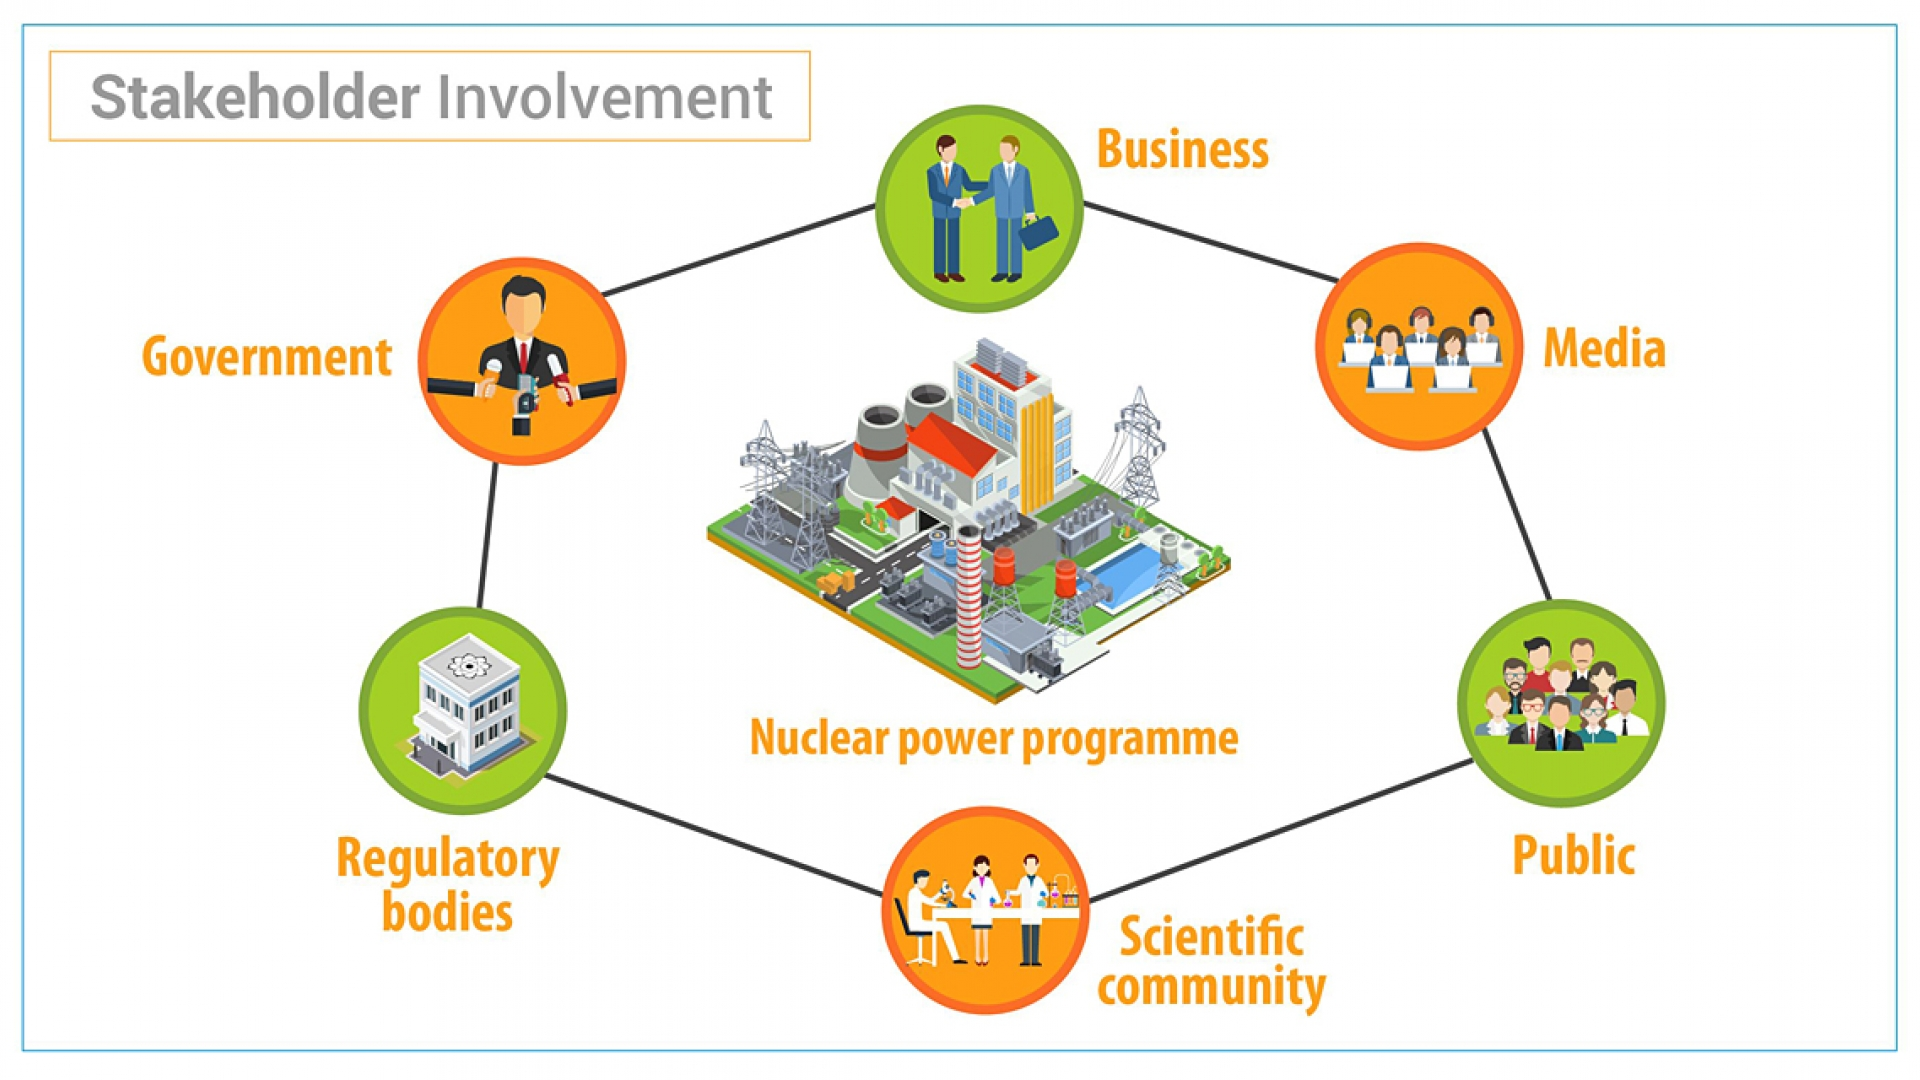 making the case for nuclear power why stakeholder involvementone of the biggest challenges that nuclear power programmes face is securing and sustaining the support of key stakeholders, including the public